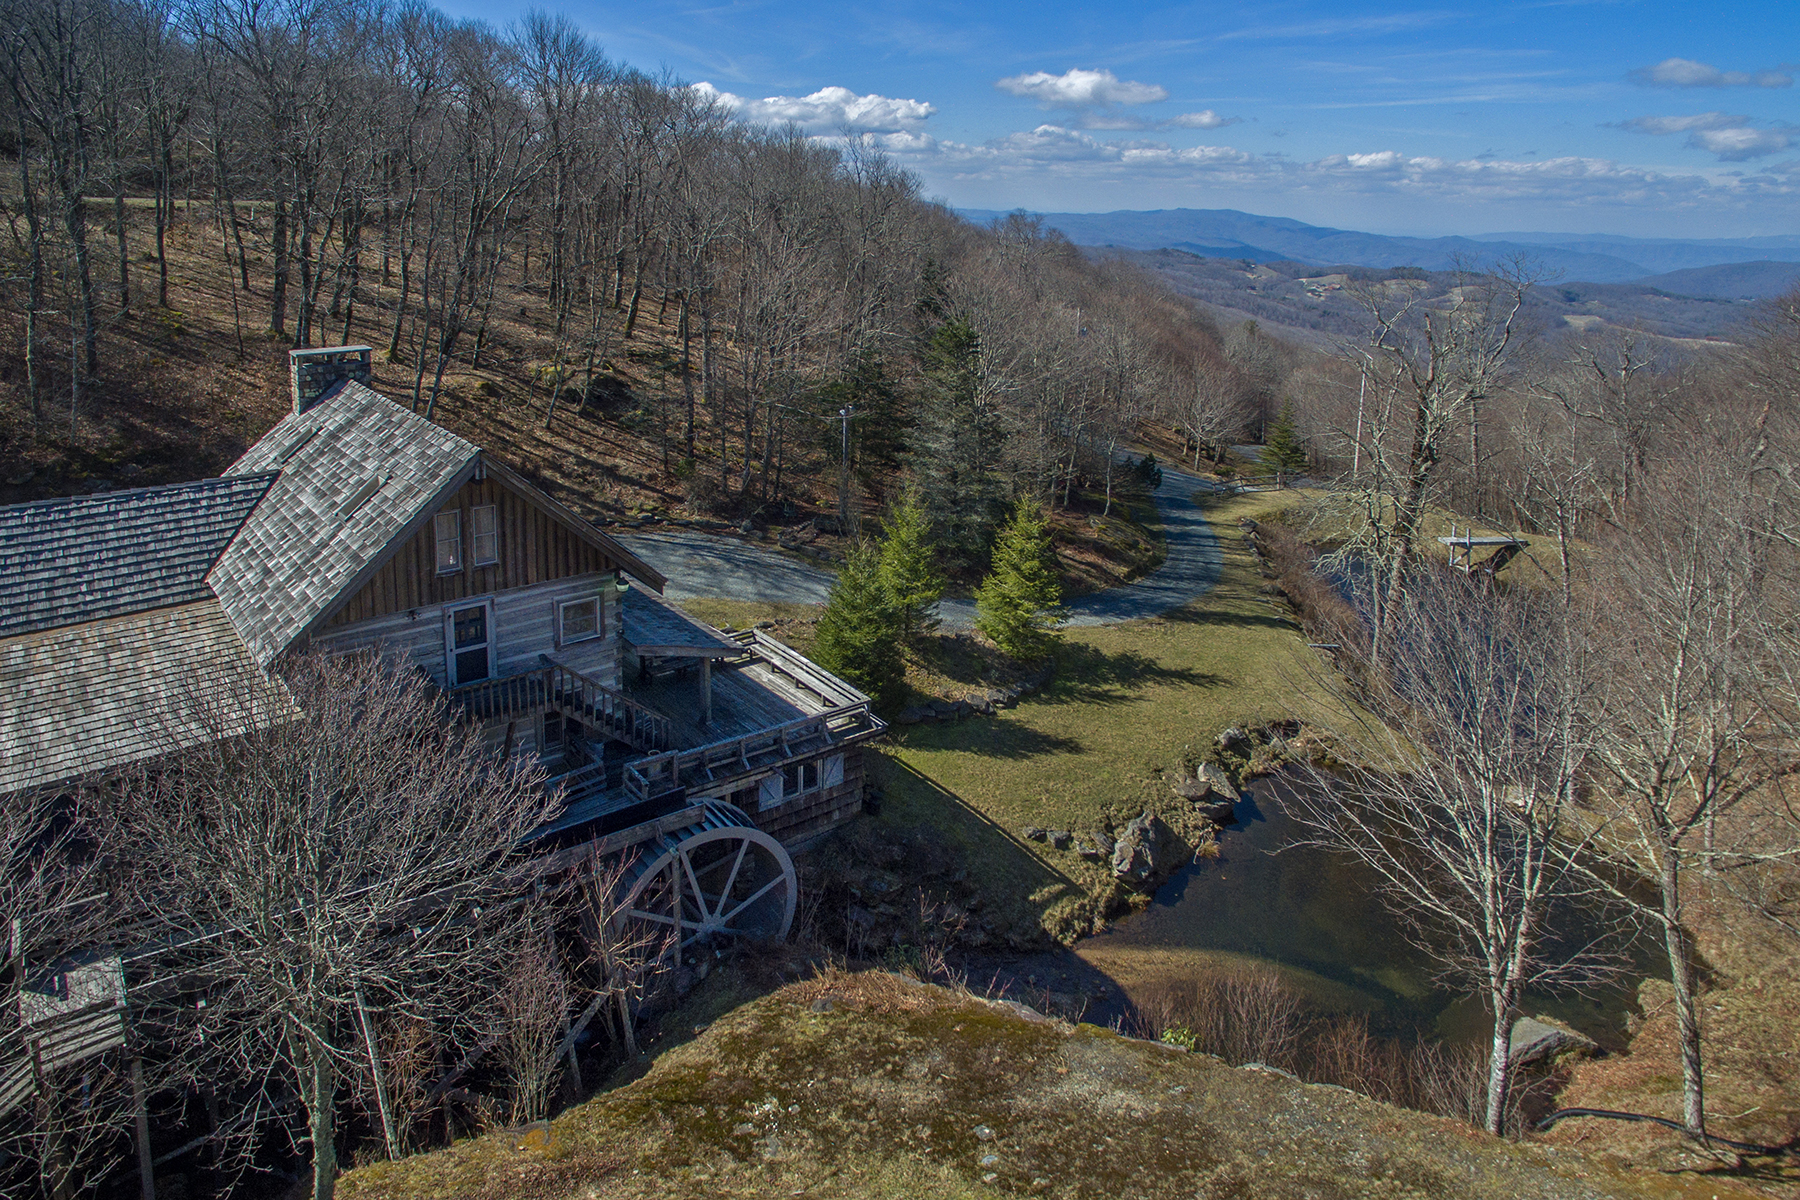 Single Family Home for Sale at BEECH MOUNTAIN - CREST OF BEECH 130 Spruce Hollow Rd, Beech Mountain, North Carolina 28604 United States